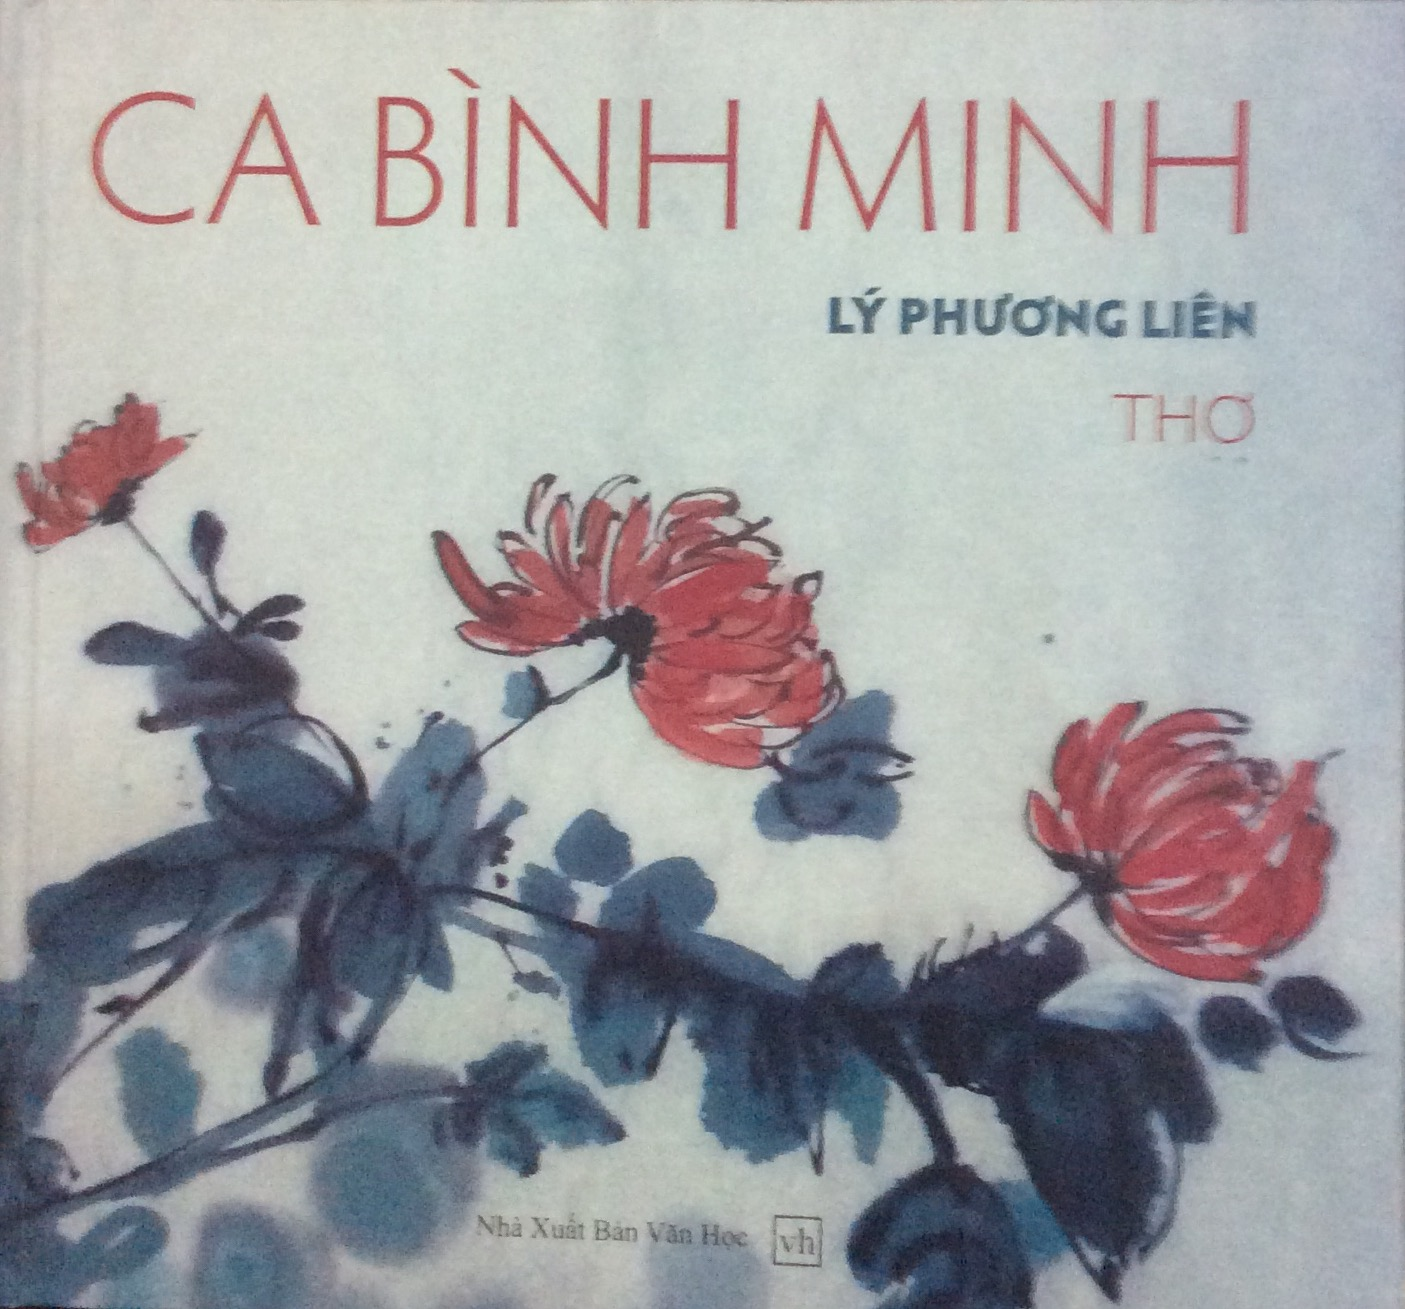 CA BÌNH MINH